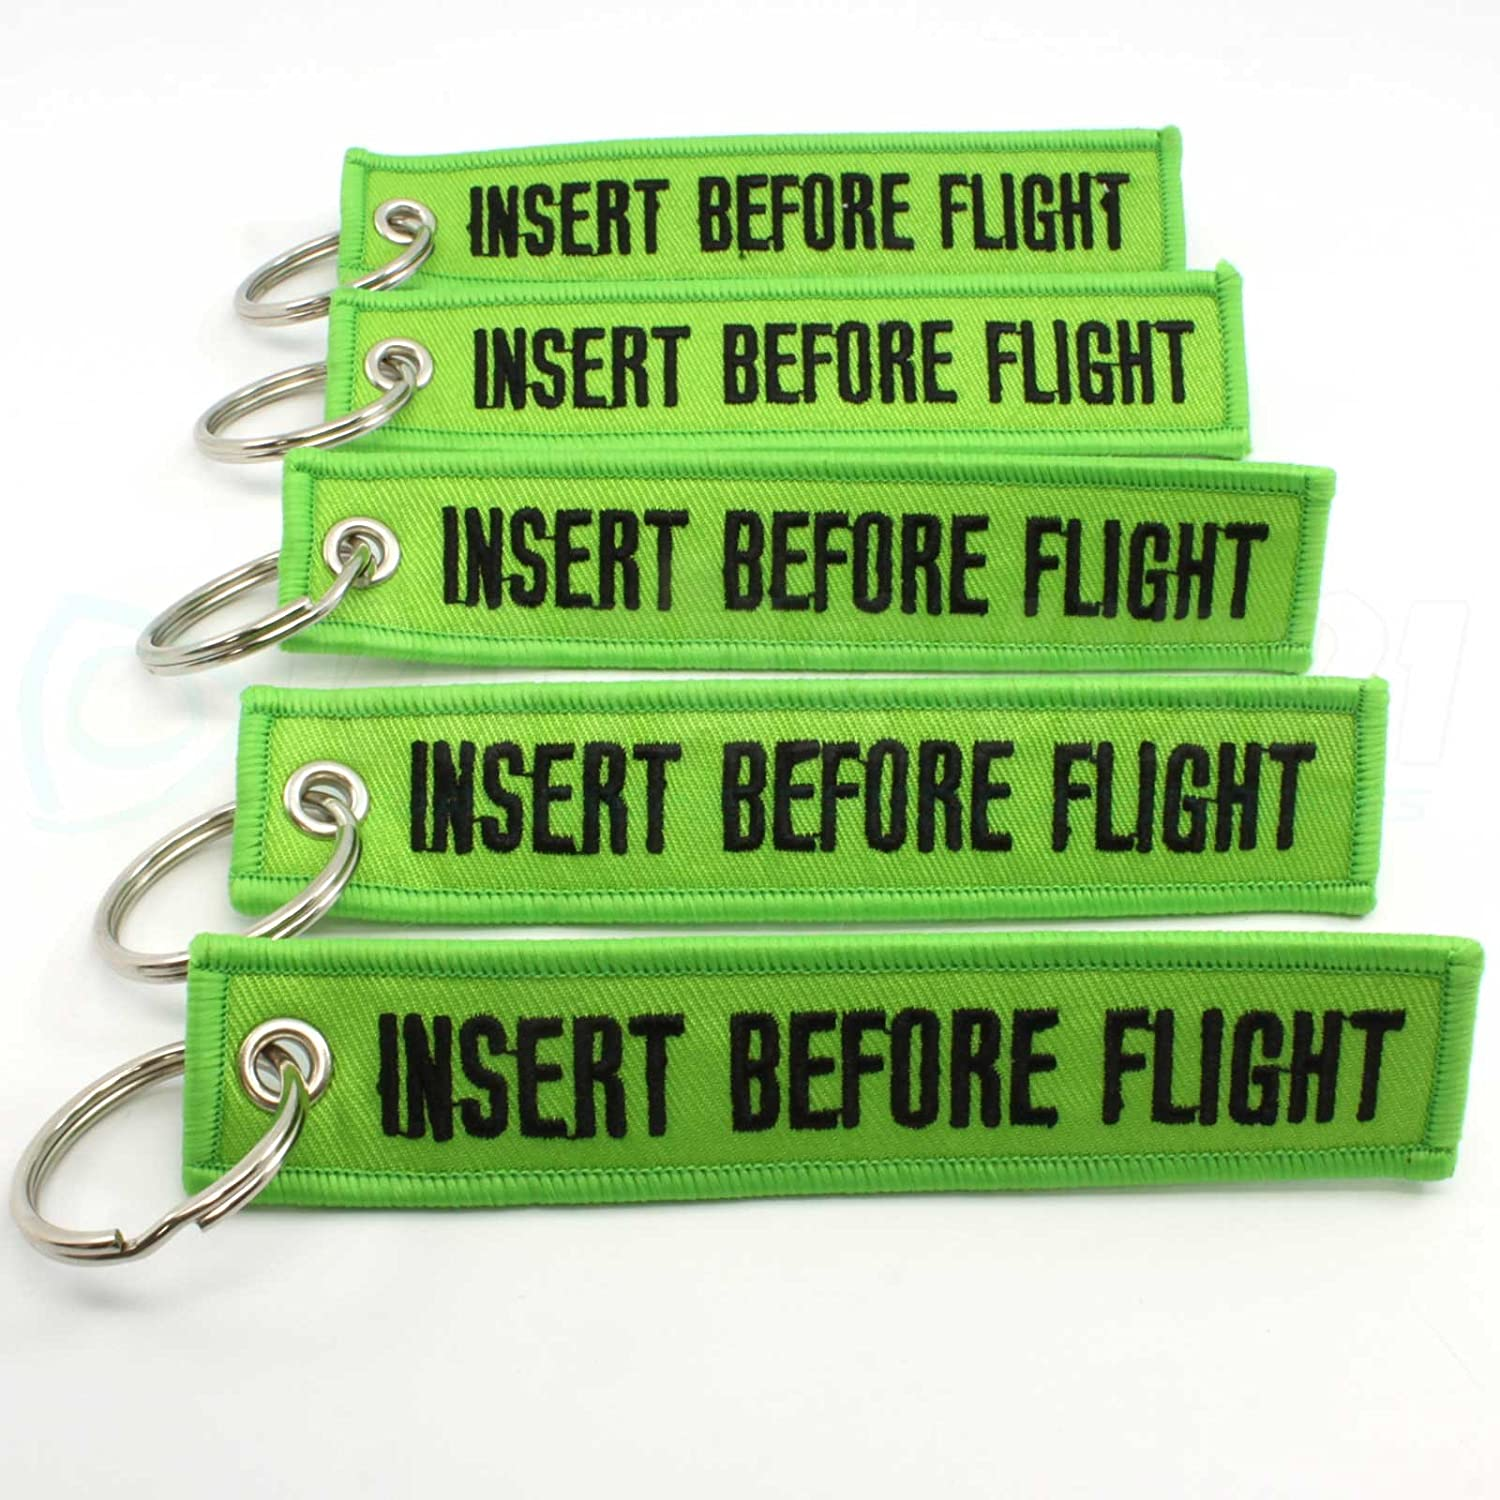 Insert Before Flight Keychain - Lime Green/Black 5pcs